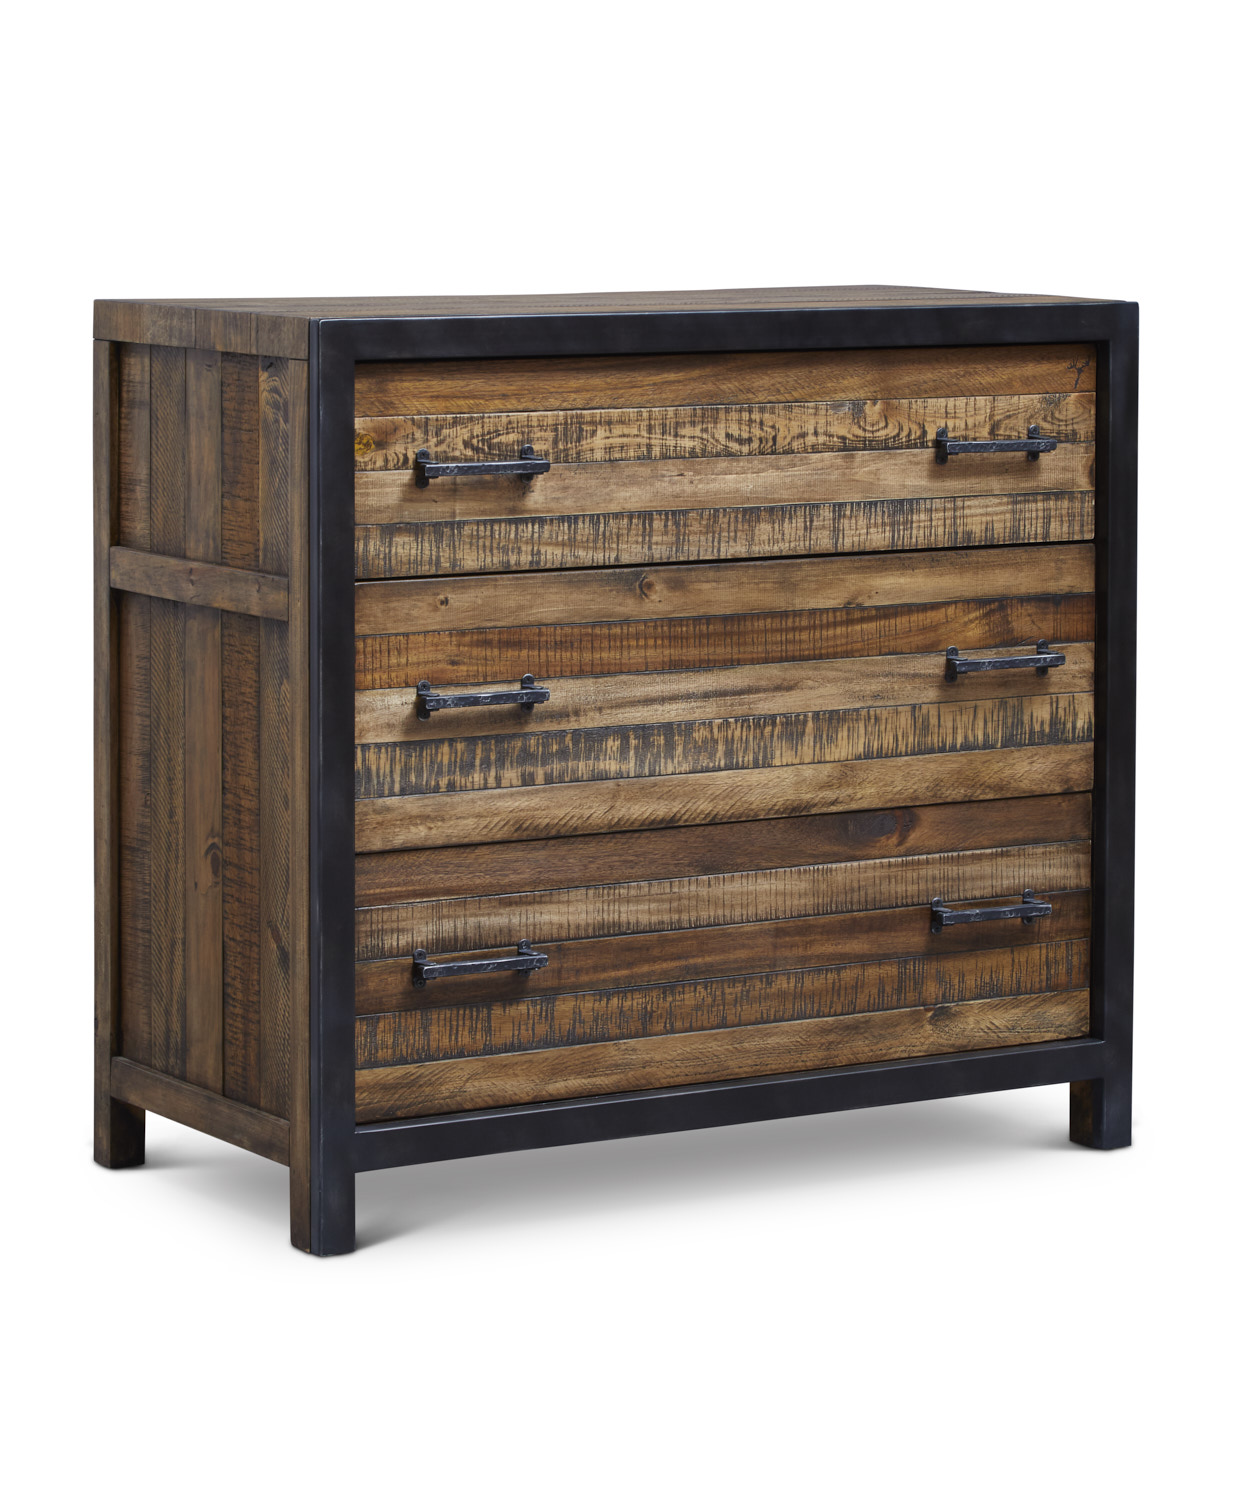 "Urban Frontier 3 Drawer Bachelor Chest  Item # DI-188108 Dimensions: 38""W x 19""D x 34.75""H"